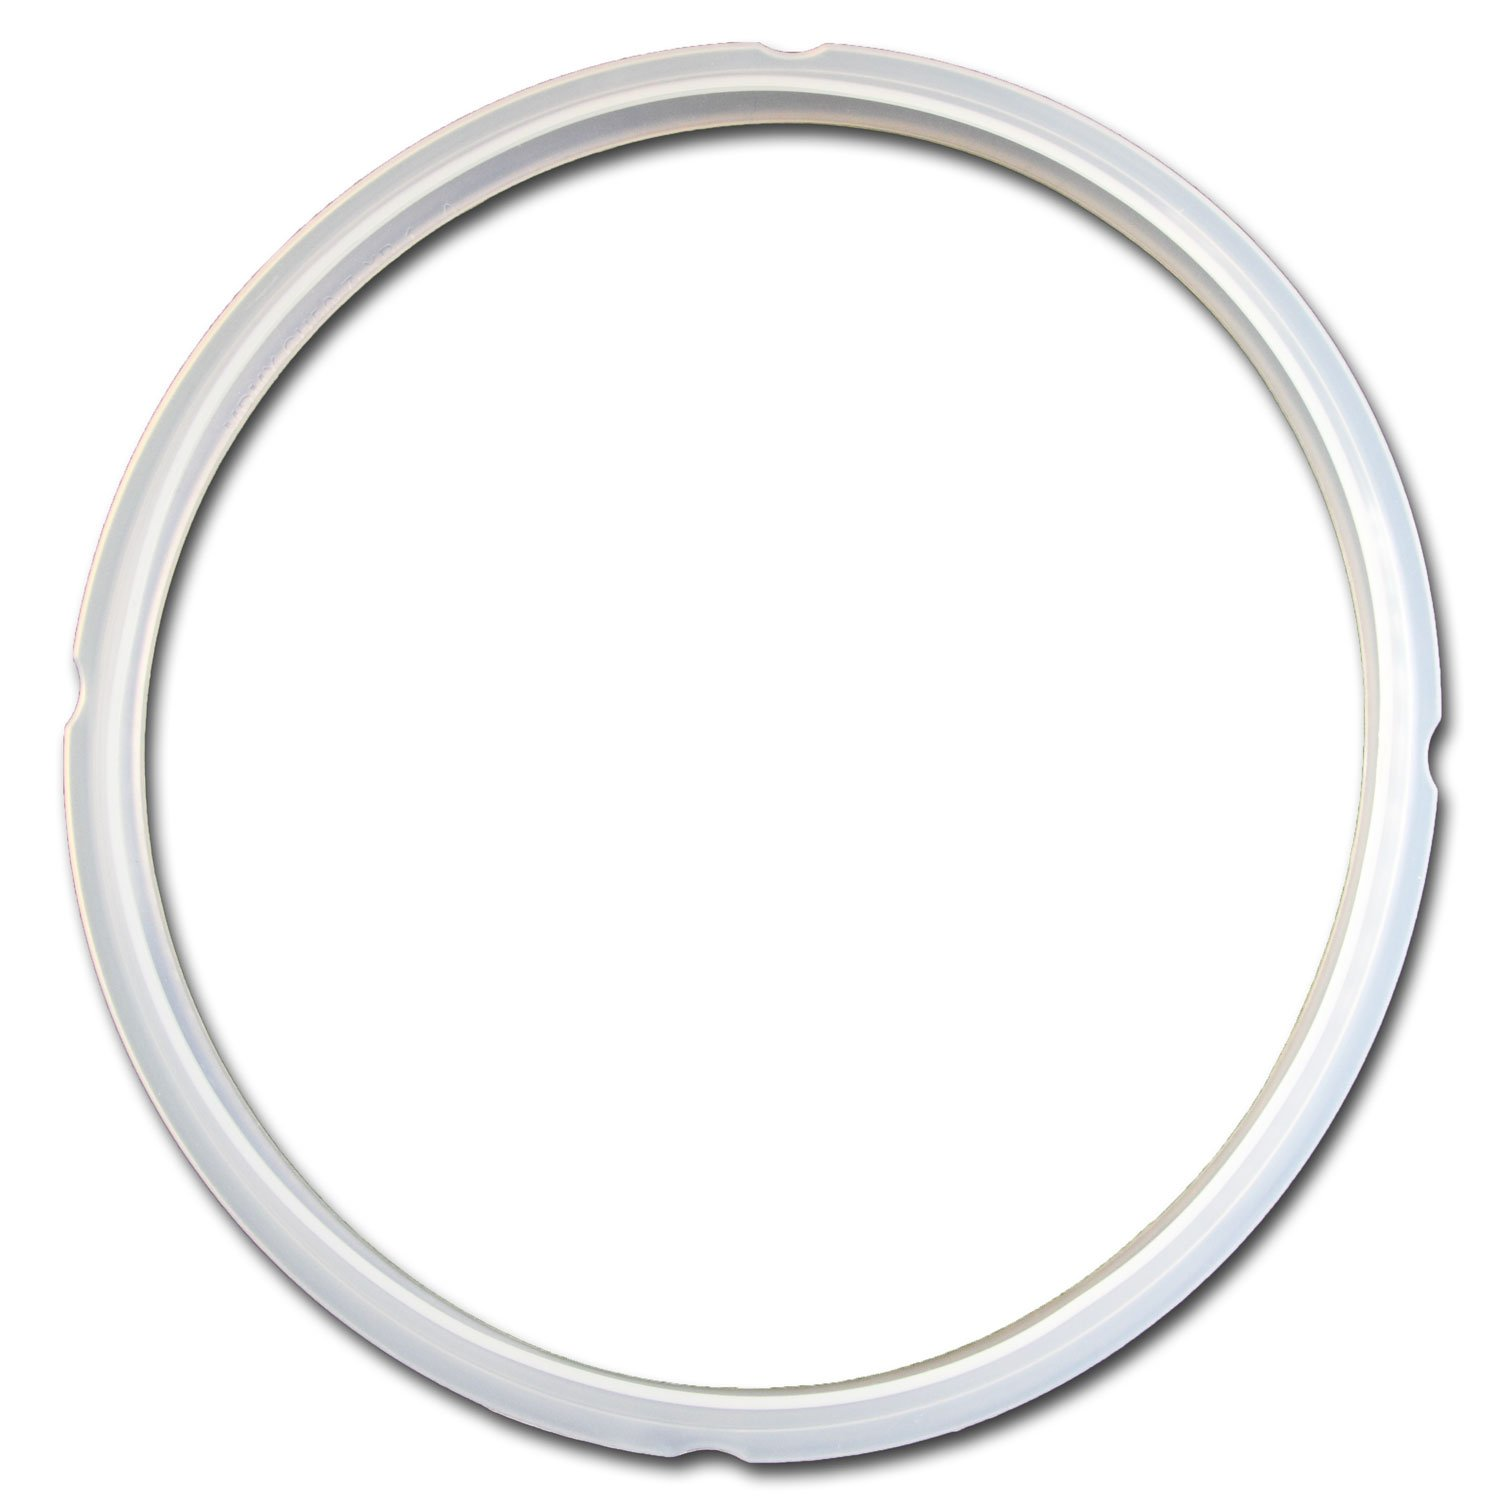 Instant Pot Silicone Sealing Ring